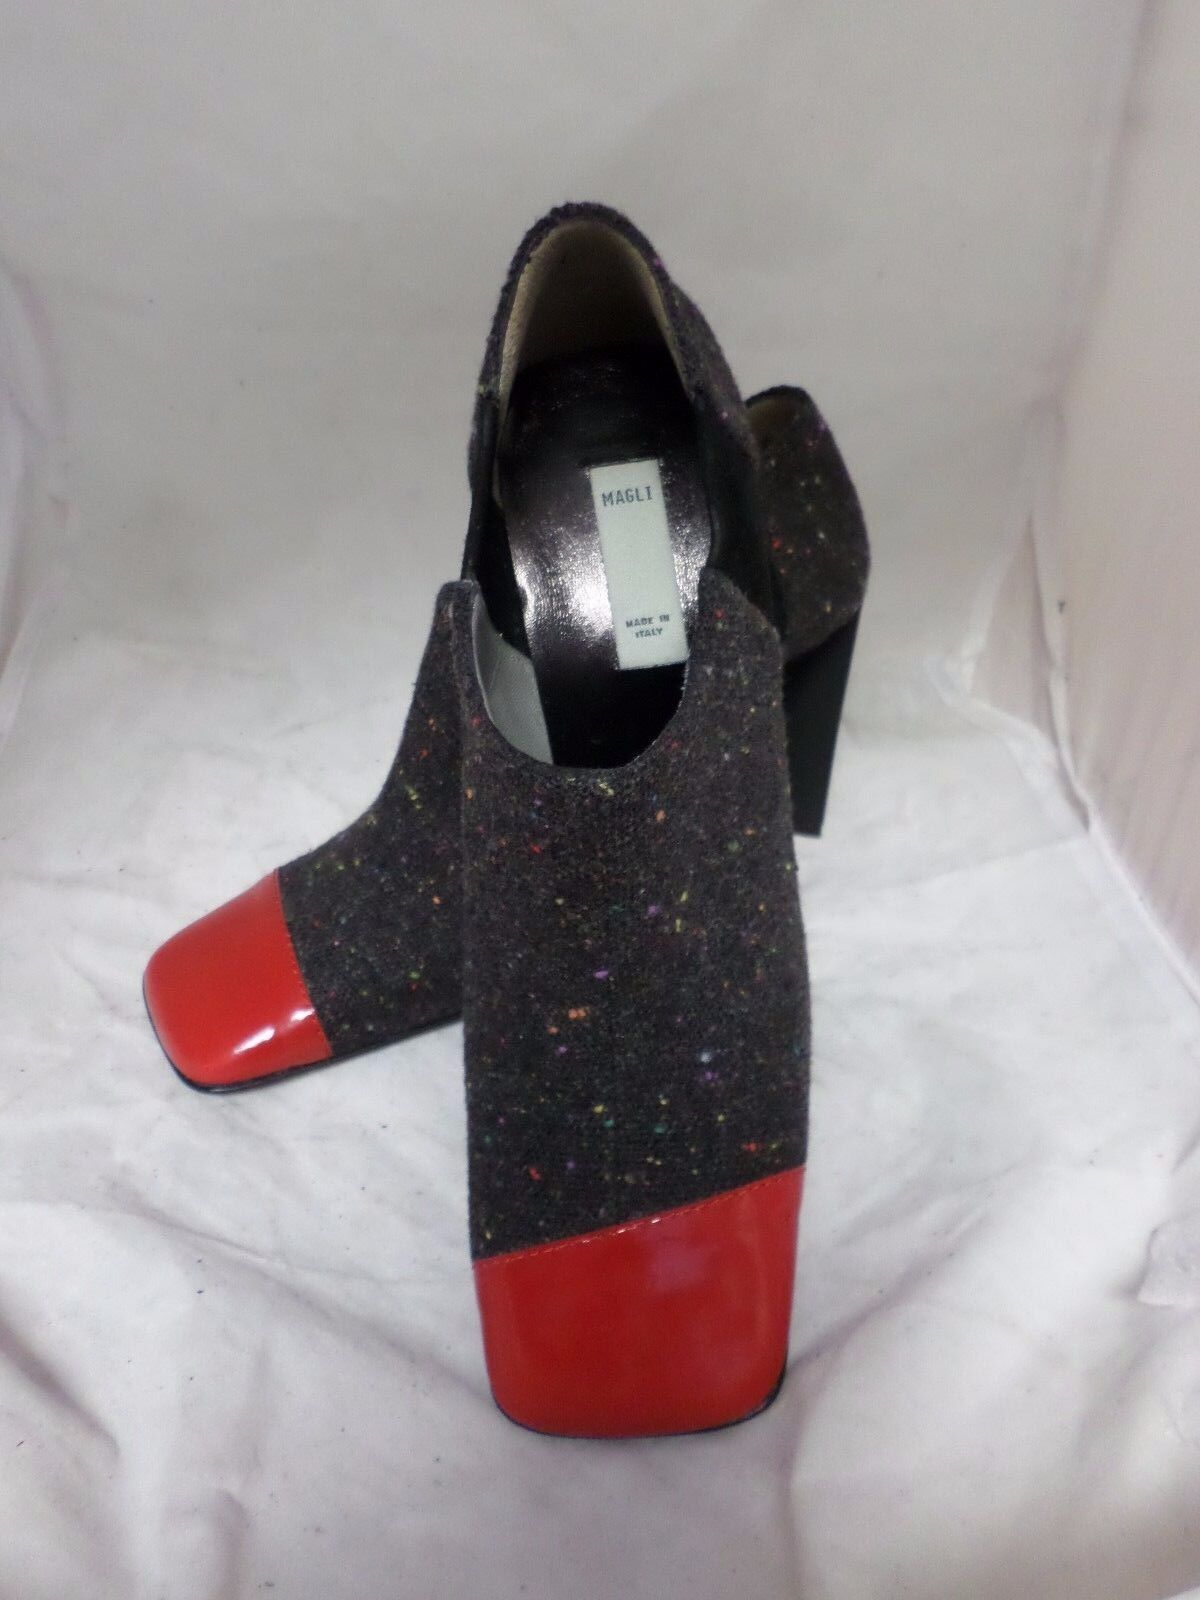 Magli Ankle Boots Grey Red UK 3 EU 36 LN06 82 SALEw